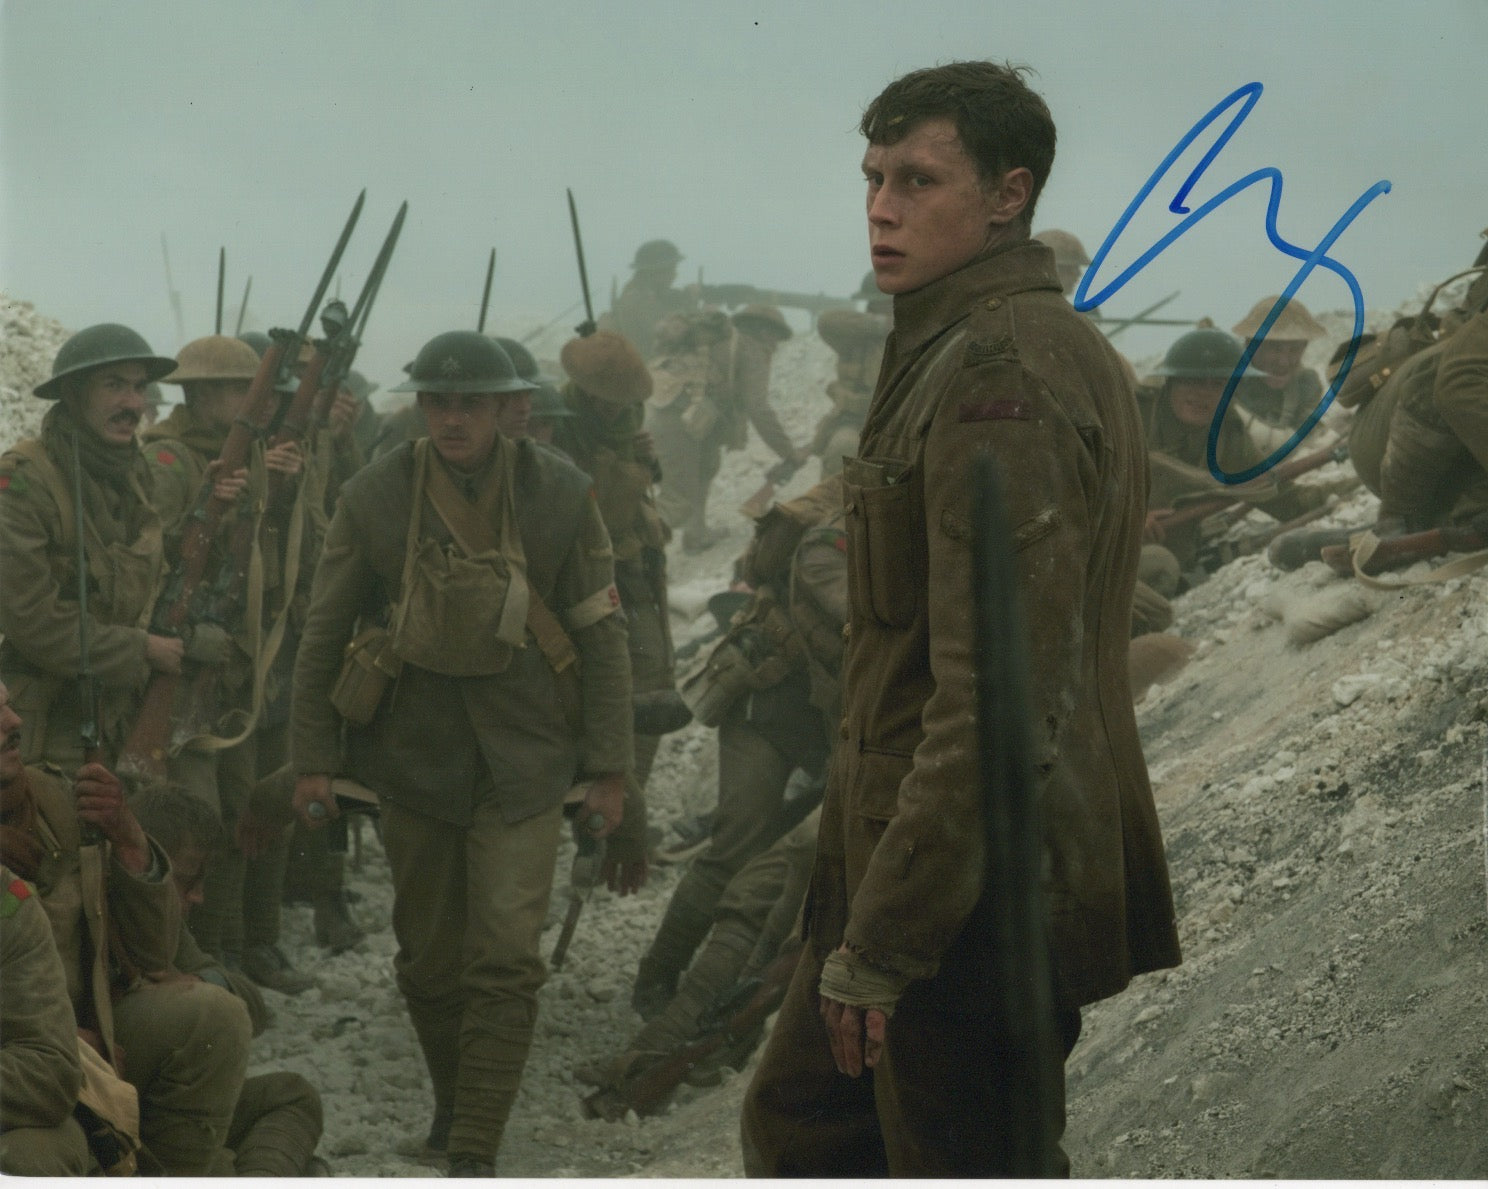 George Mackay 1917 Signed Autograph 8x10 Photo #8 - Outlaw Hobbies Authentic Autographs